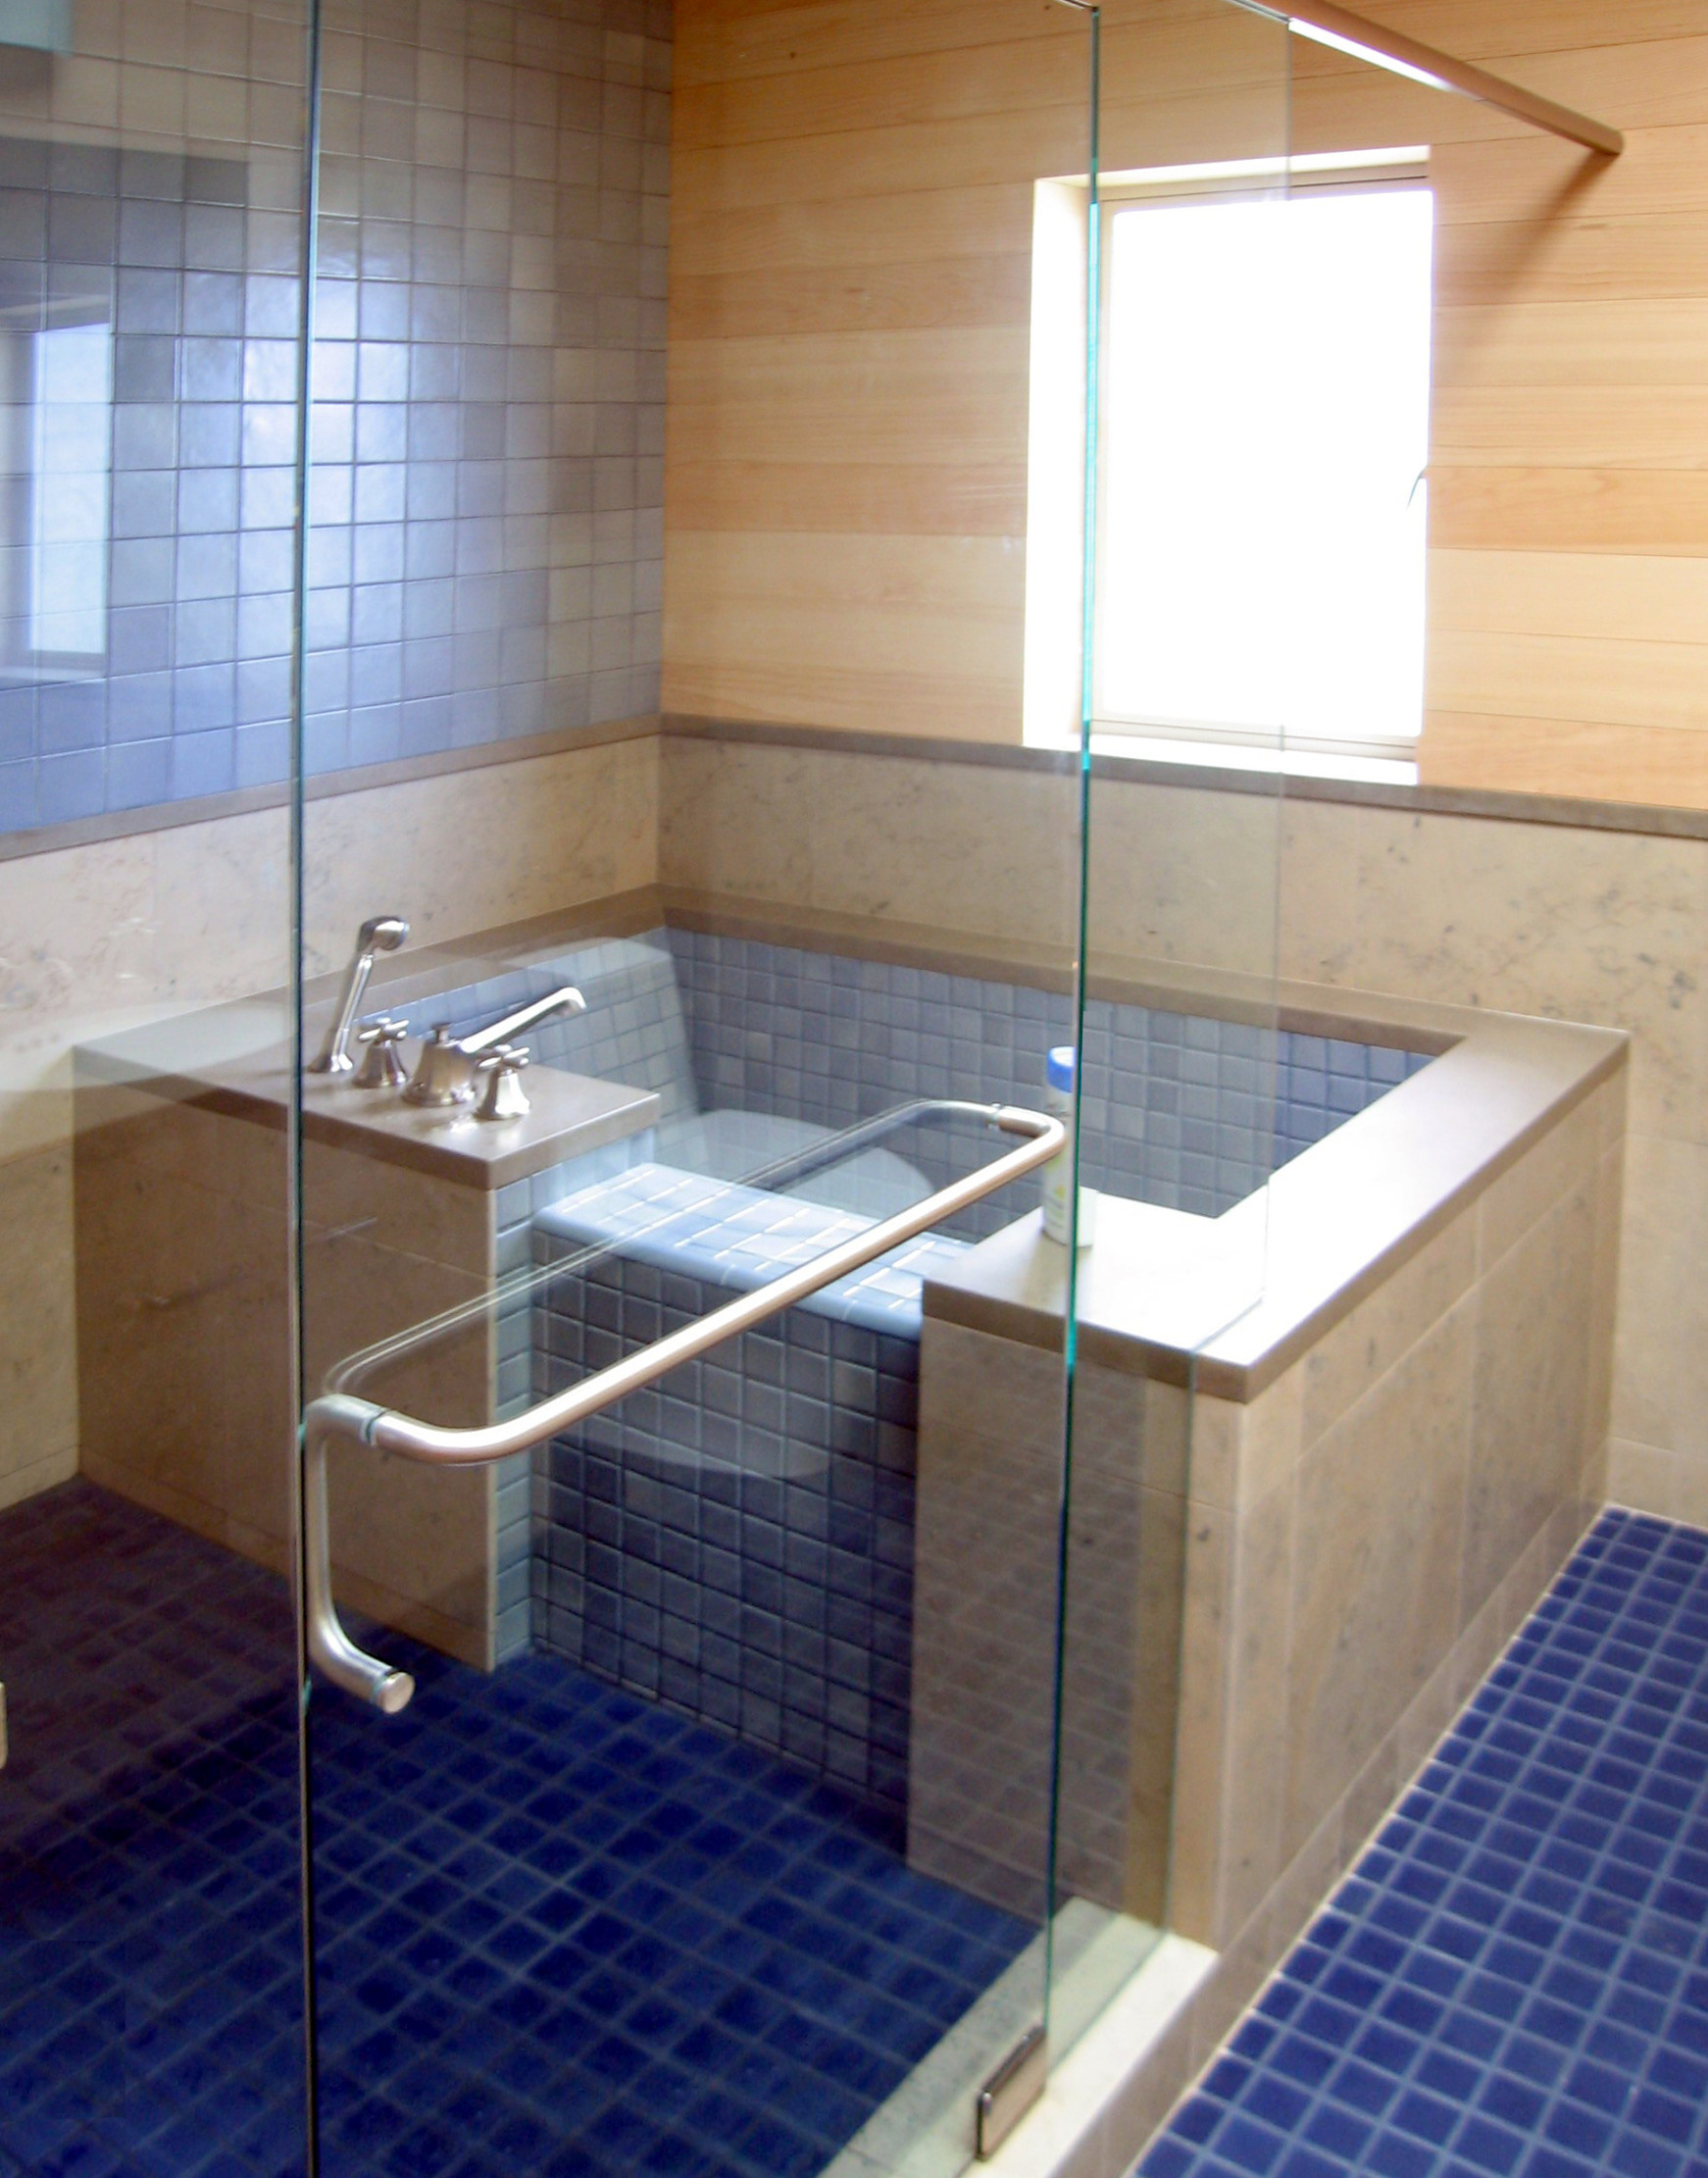 Bathroom with blue tile and large soaking tub